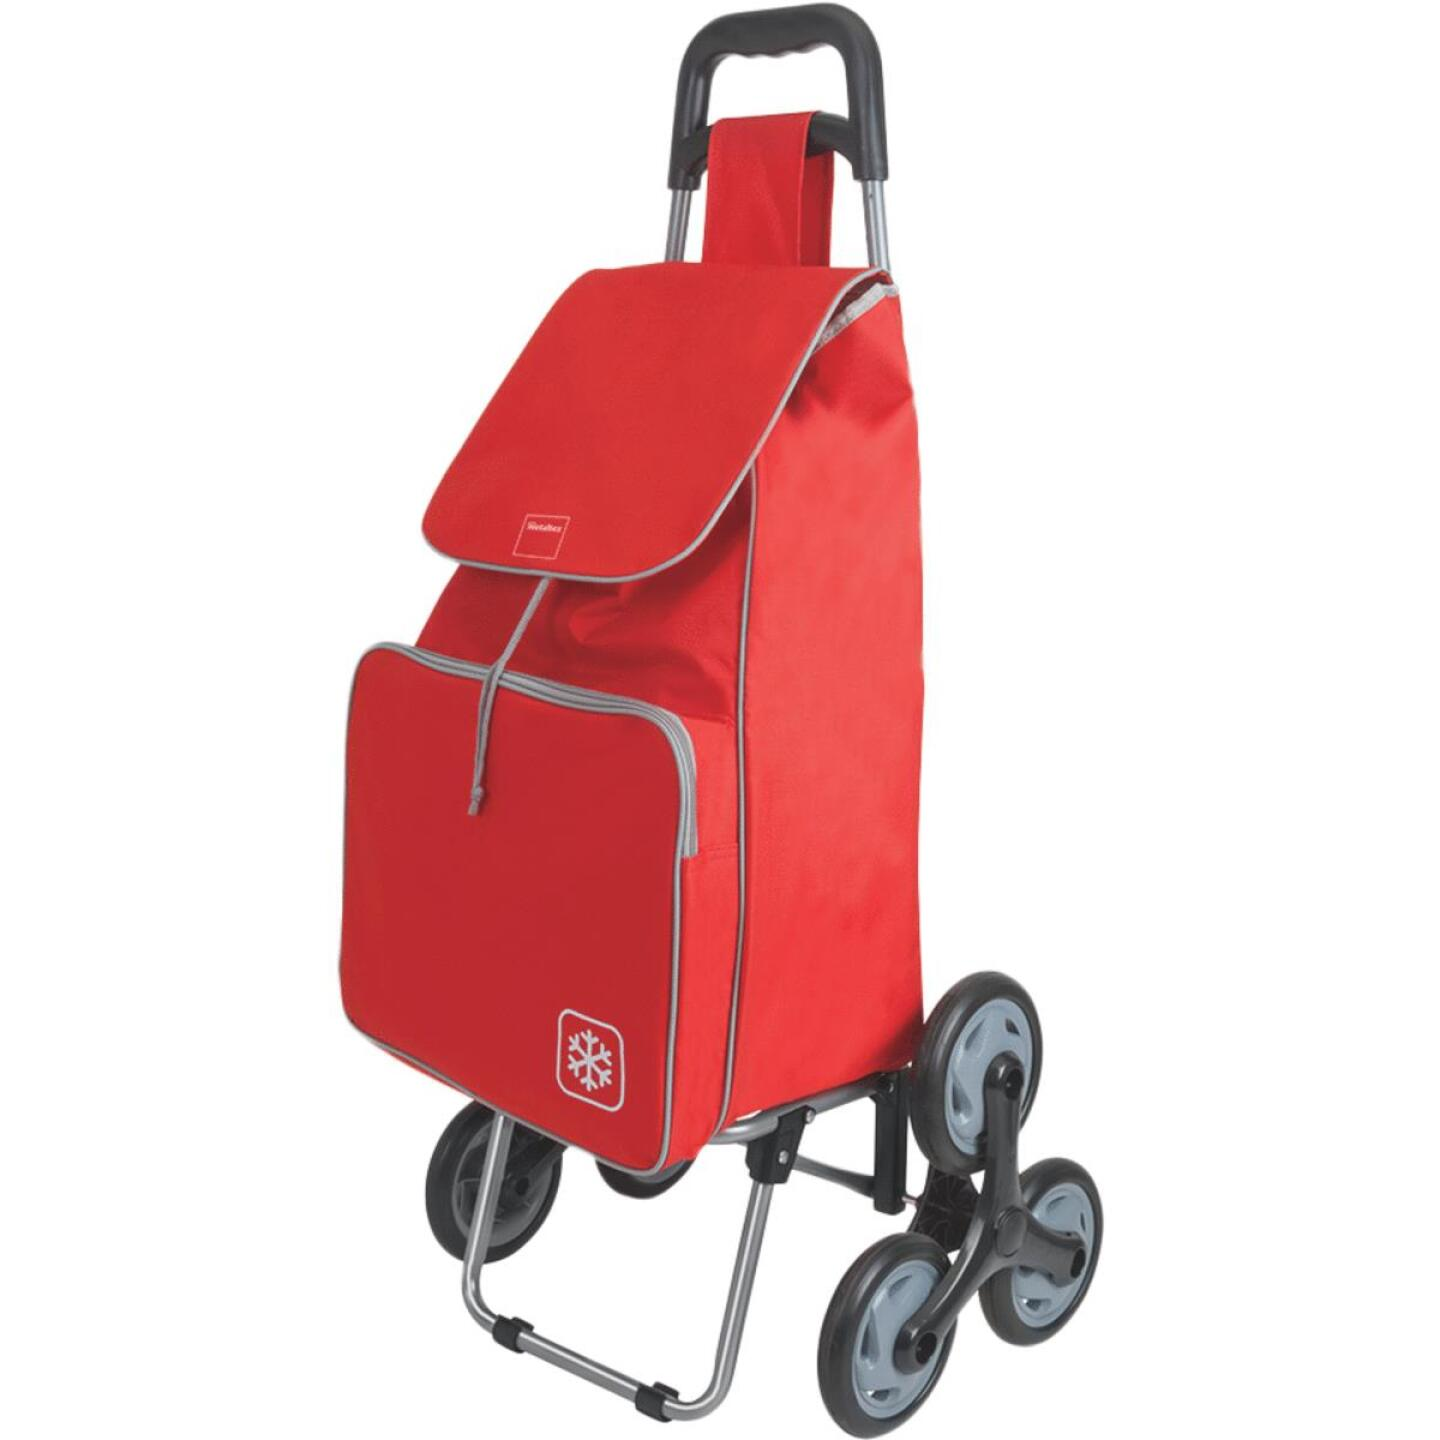 Metaltex Peony Red 14 In. x 39 In. x 11 In. Soft Sided Tote Stair Climbing Utility Cart Image 1